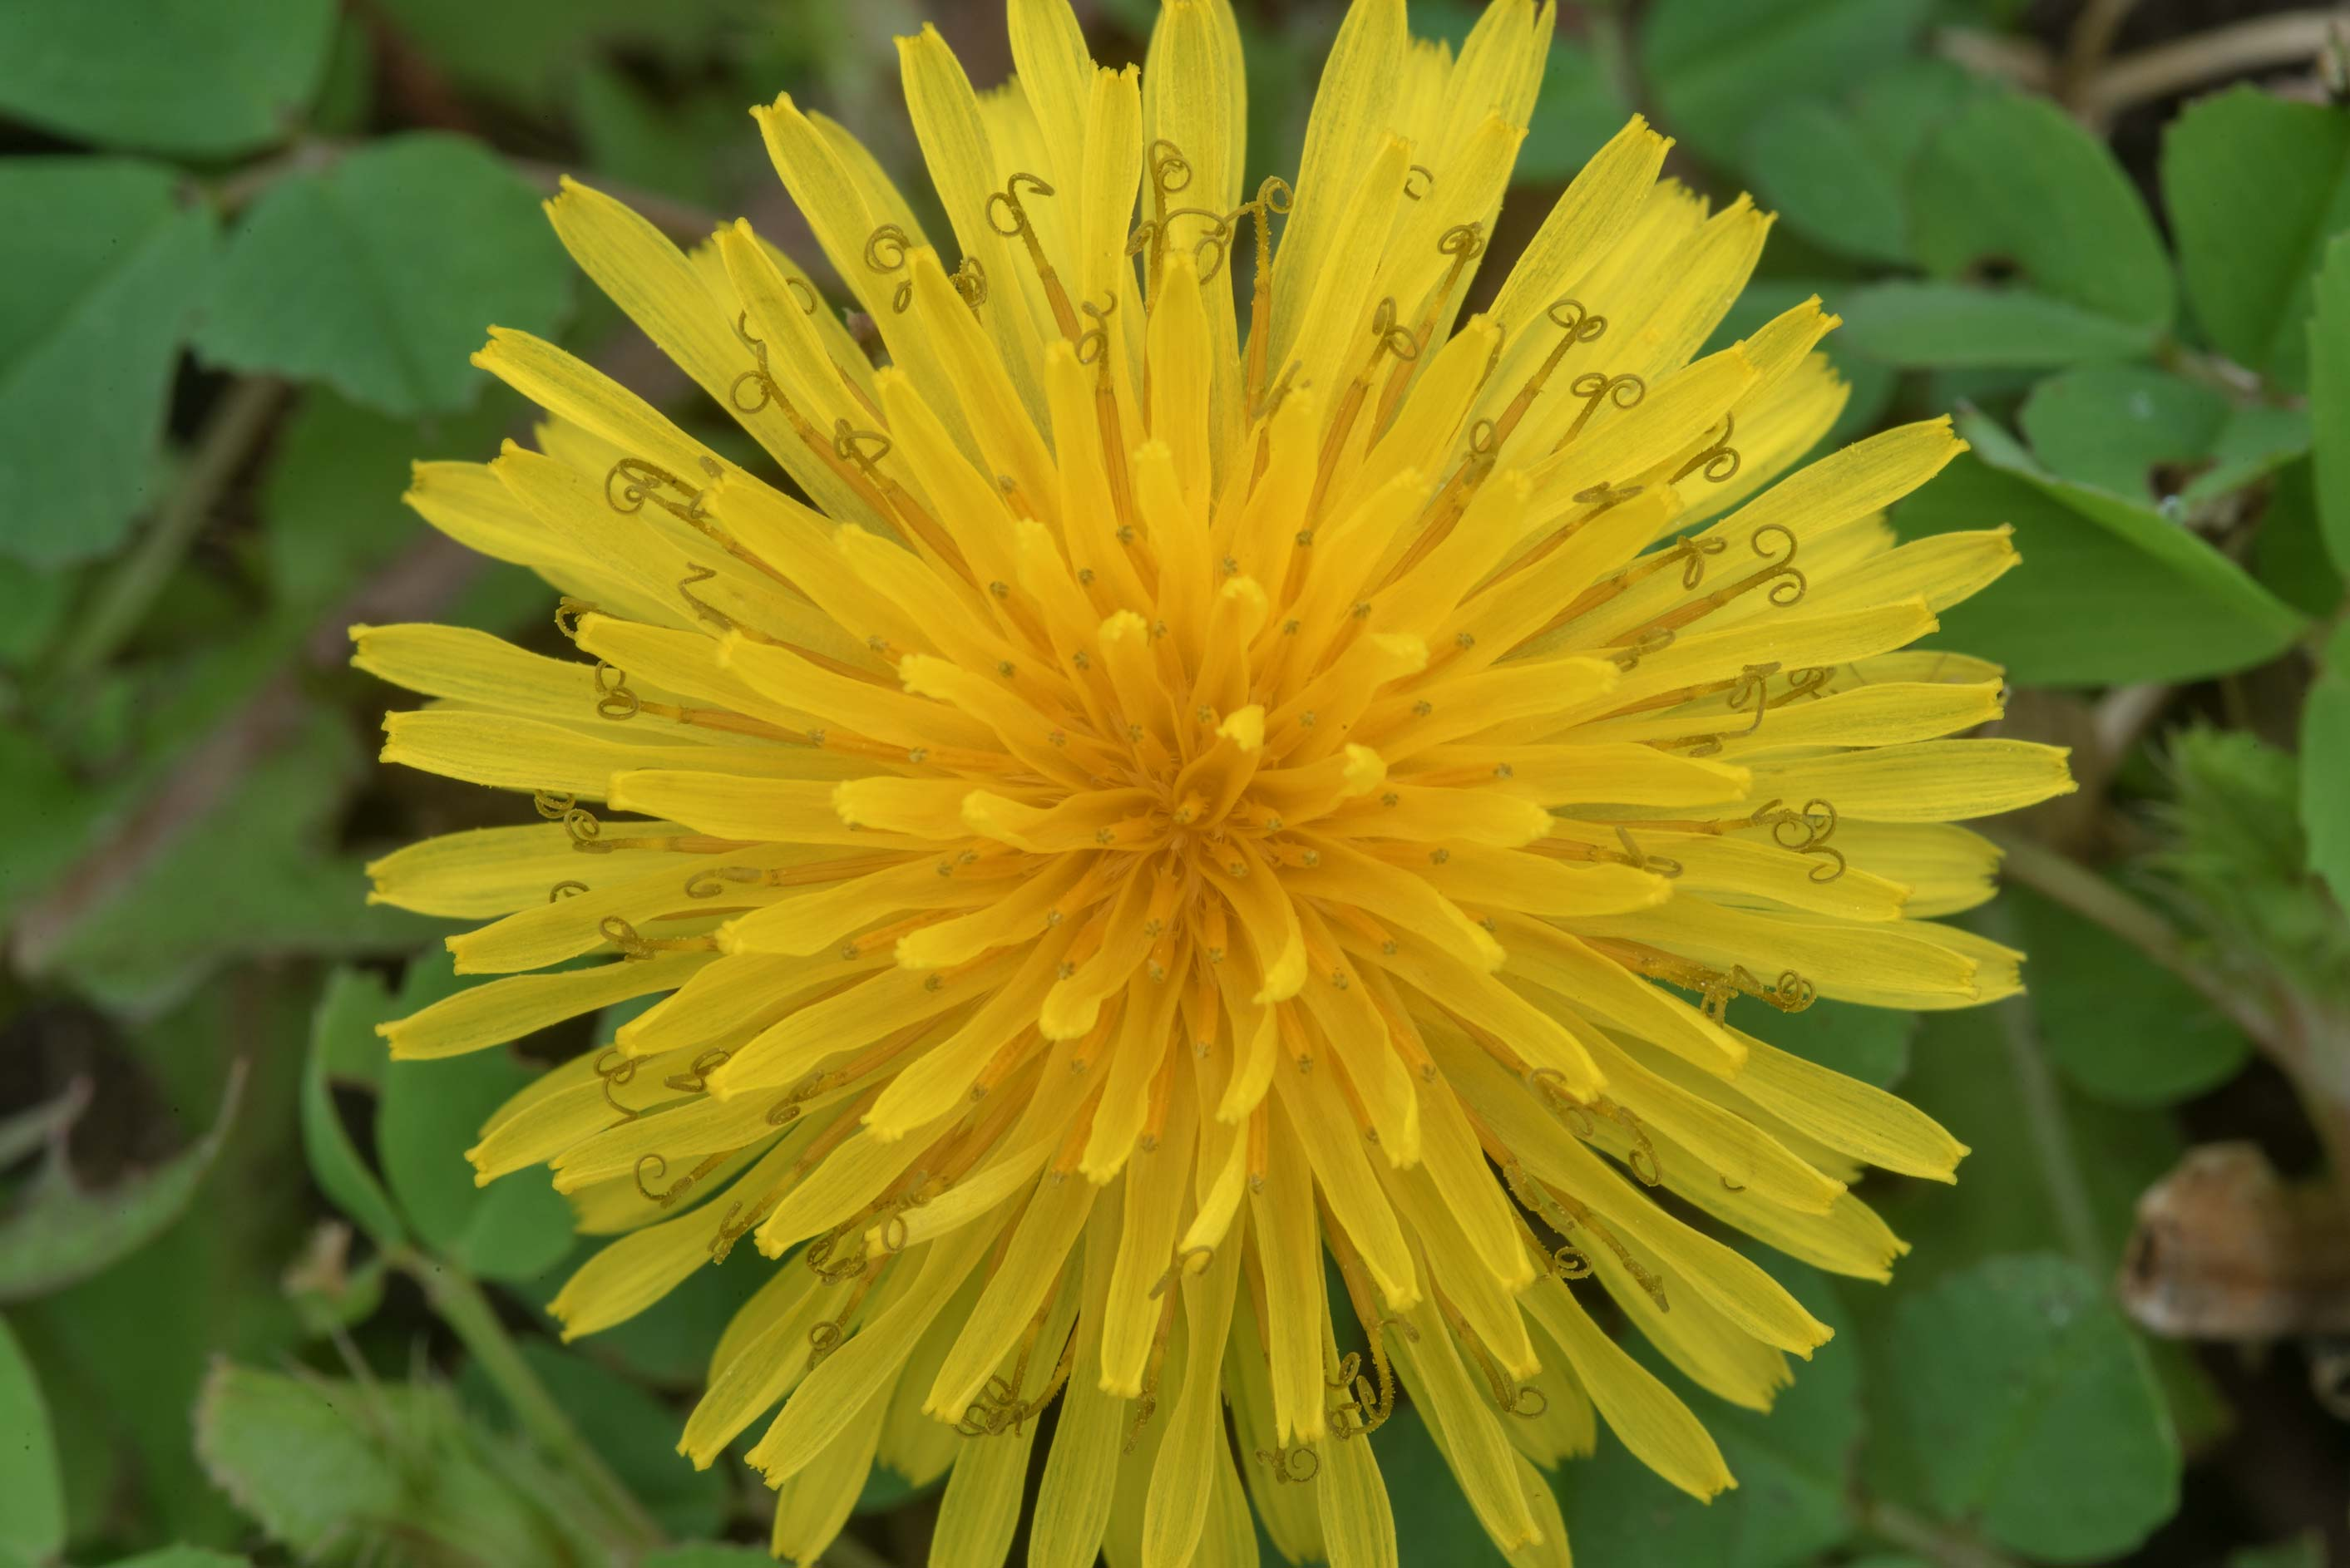 Common dandelion (Taraxacum officinale) in Wolf Pen Creek Park. College Station, Texas